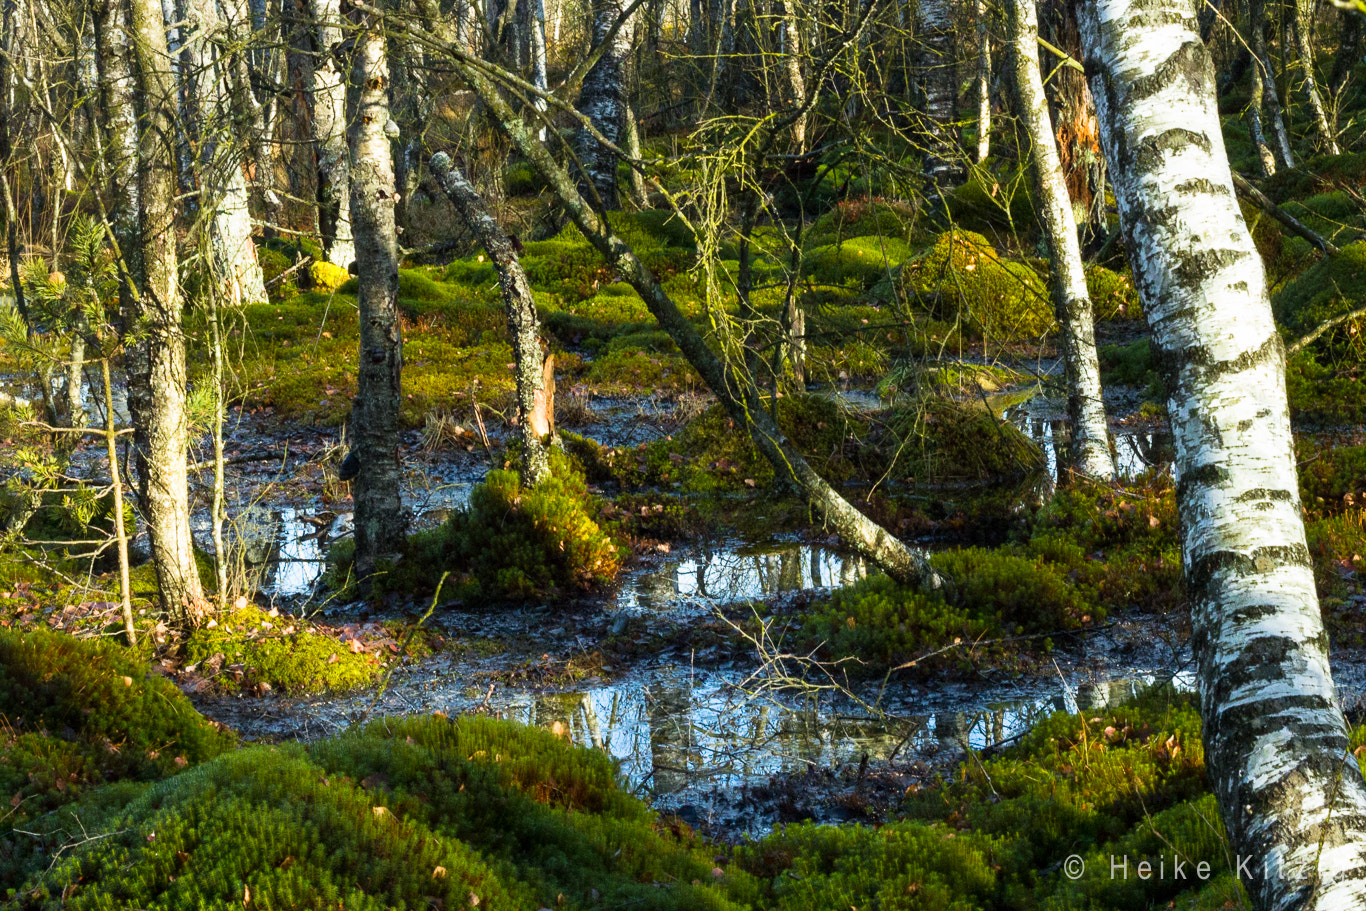 Photograph Moss in Schwenningen Germany 2 by Heike Kitzig on 500px